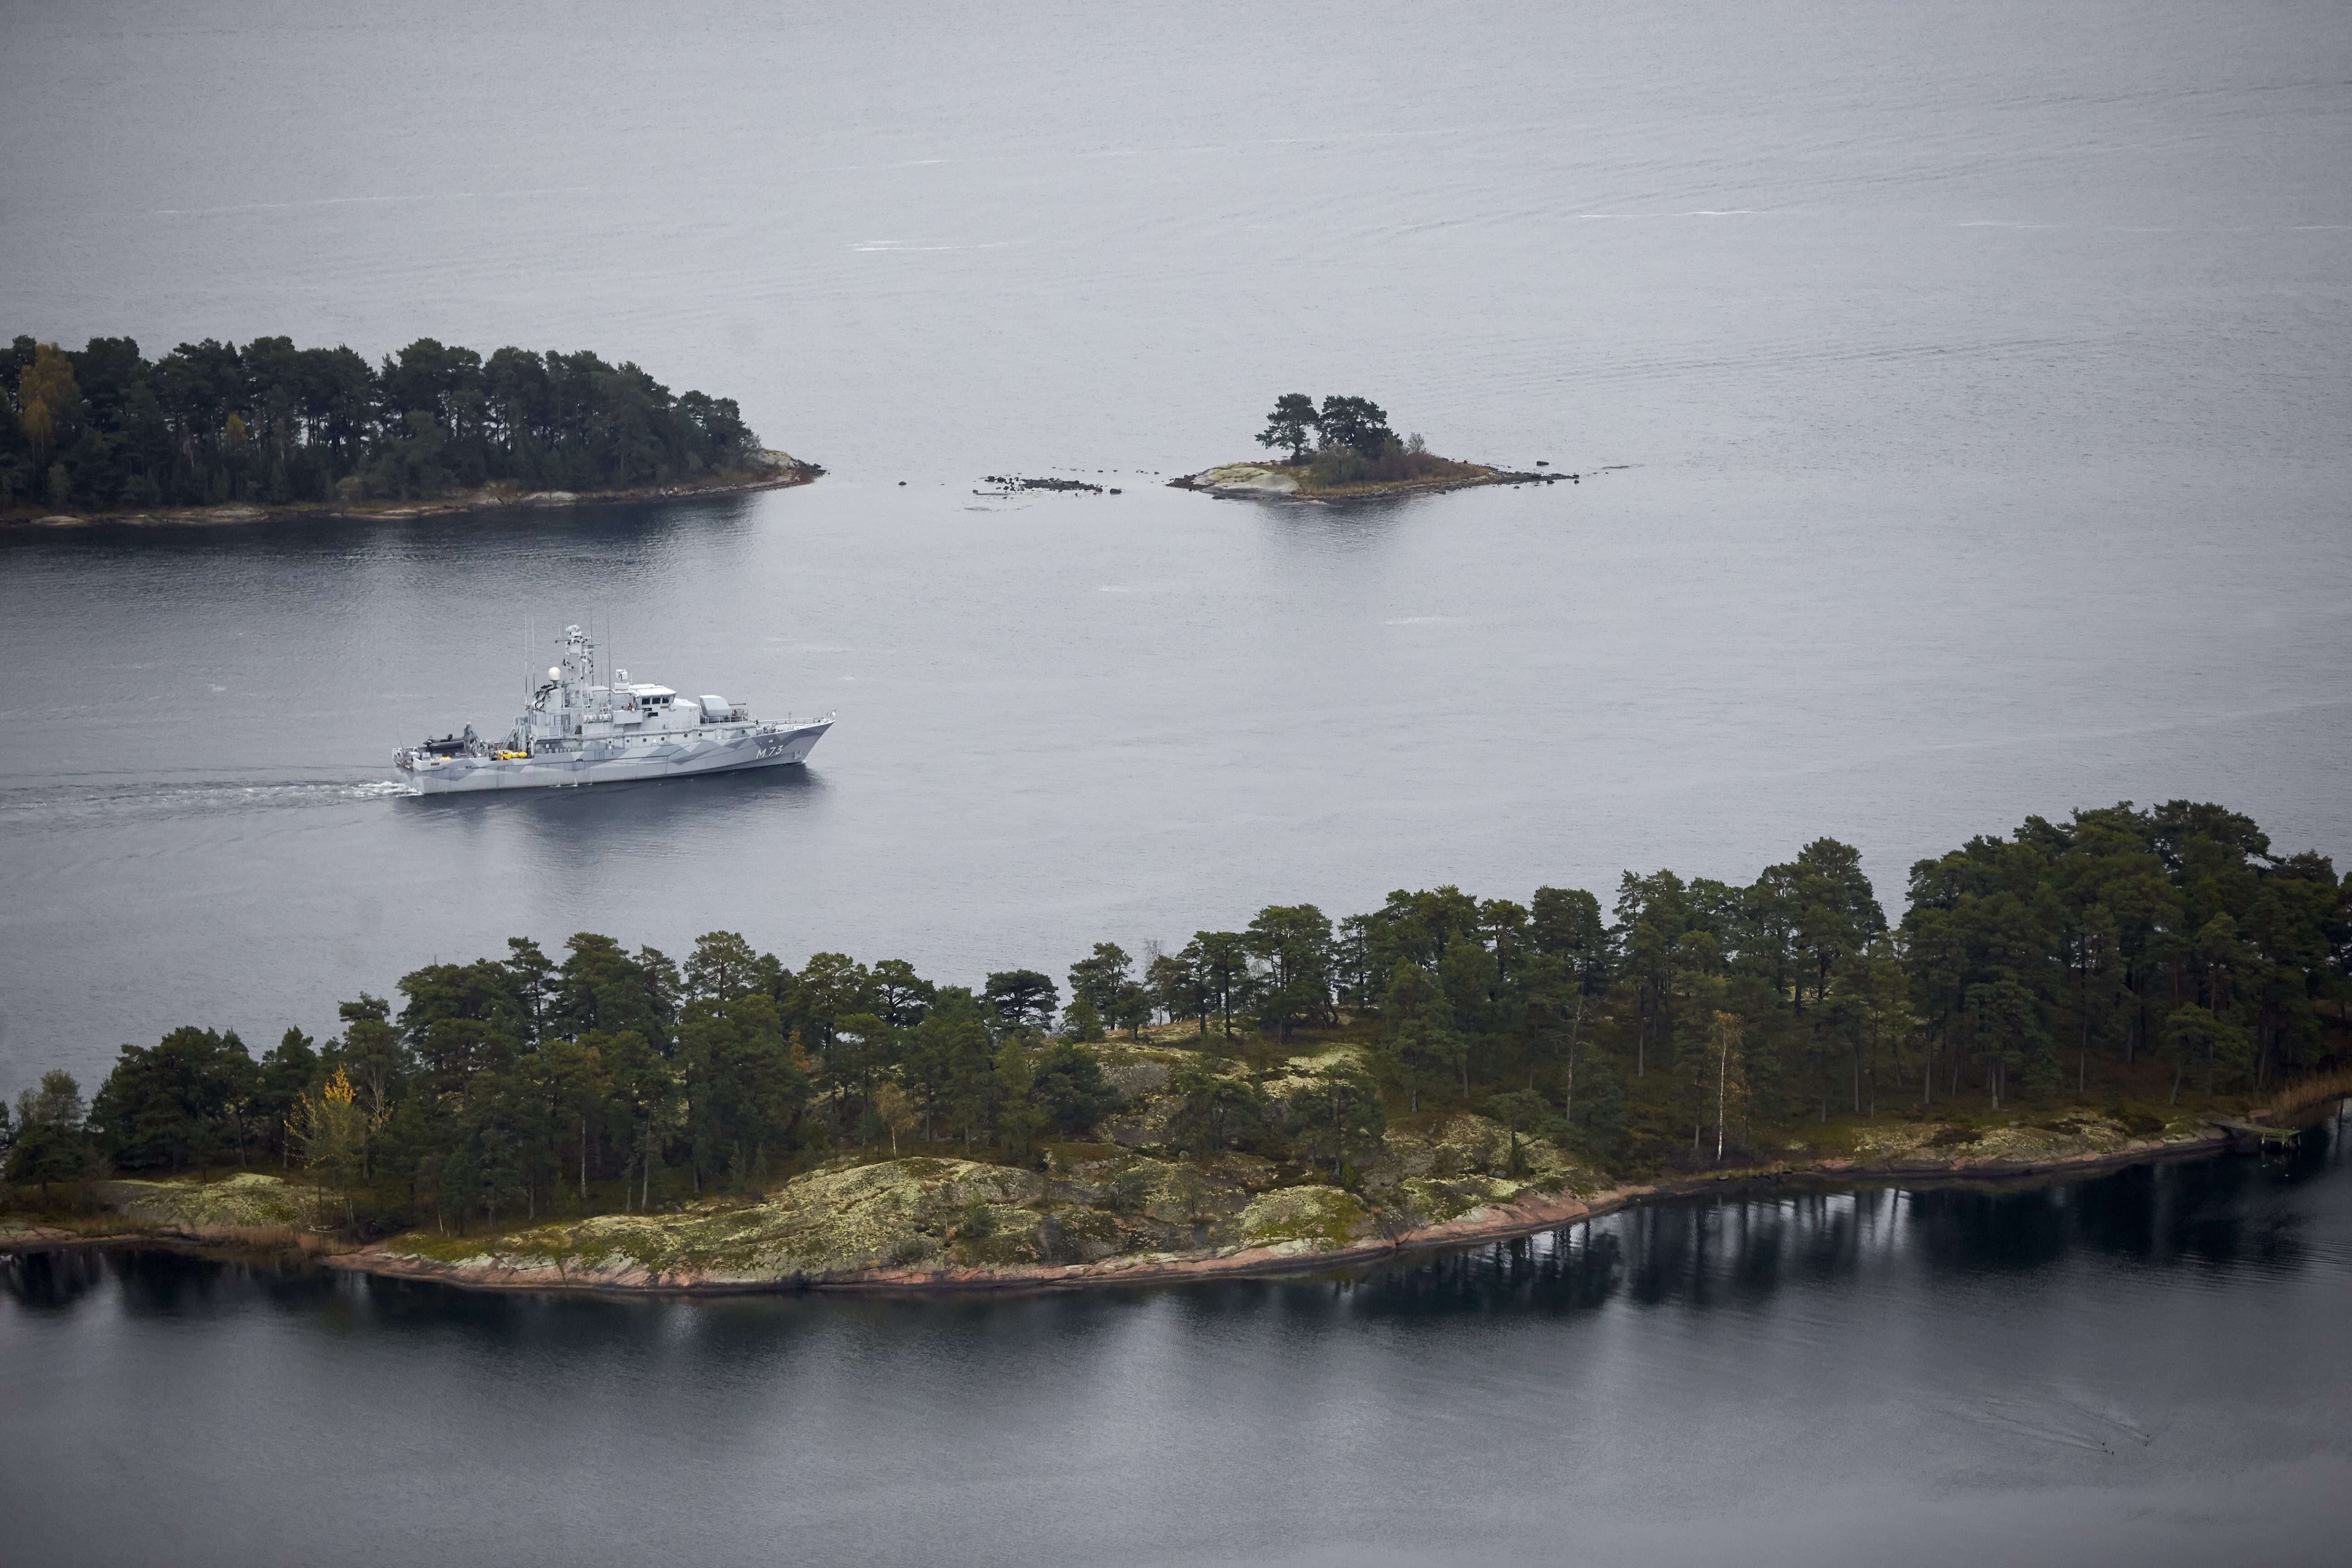 Swedish minesweeper HMS Koster searching for what the military says is a foreign threat in the waters in the Stockholm Archipelago, Sweden, on Oct. 19 2014.